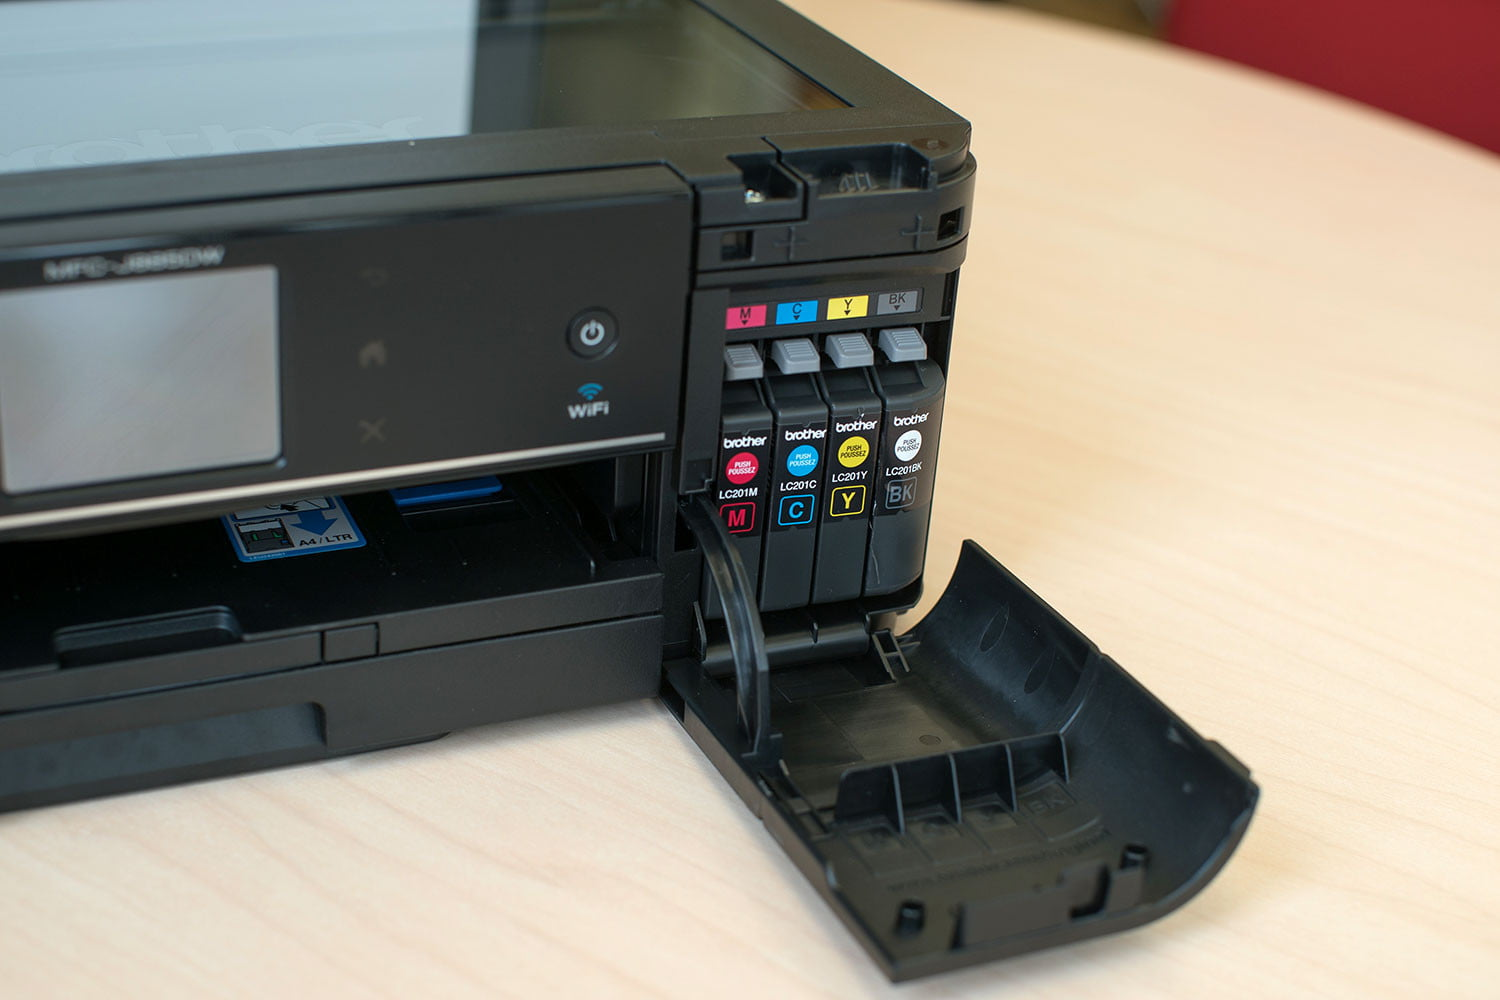 you can install several printers on your machine but at least one must be the printer